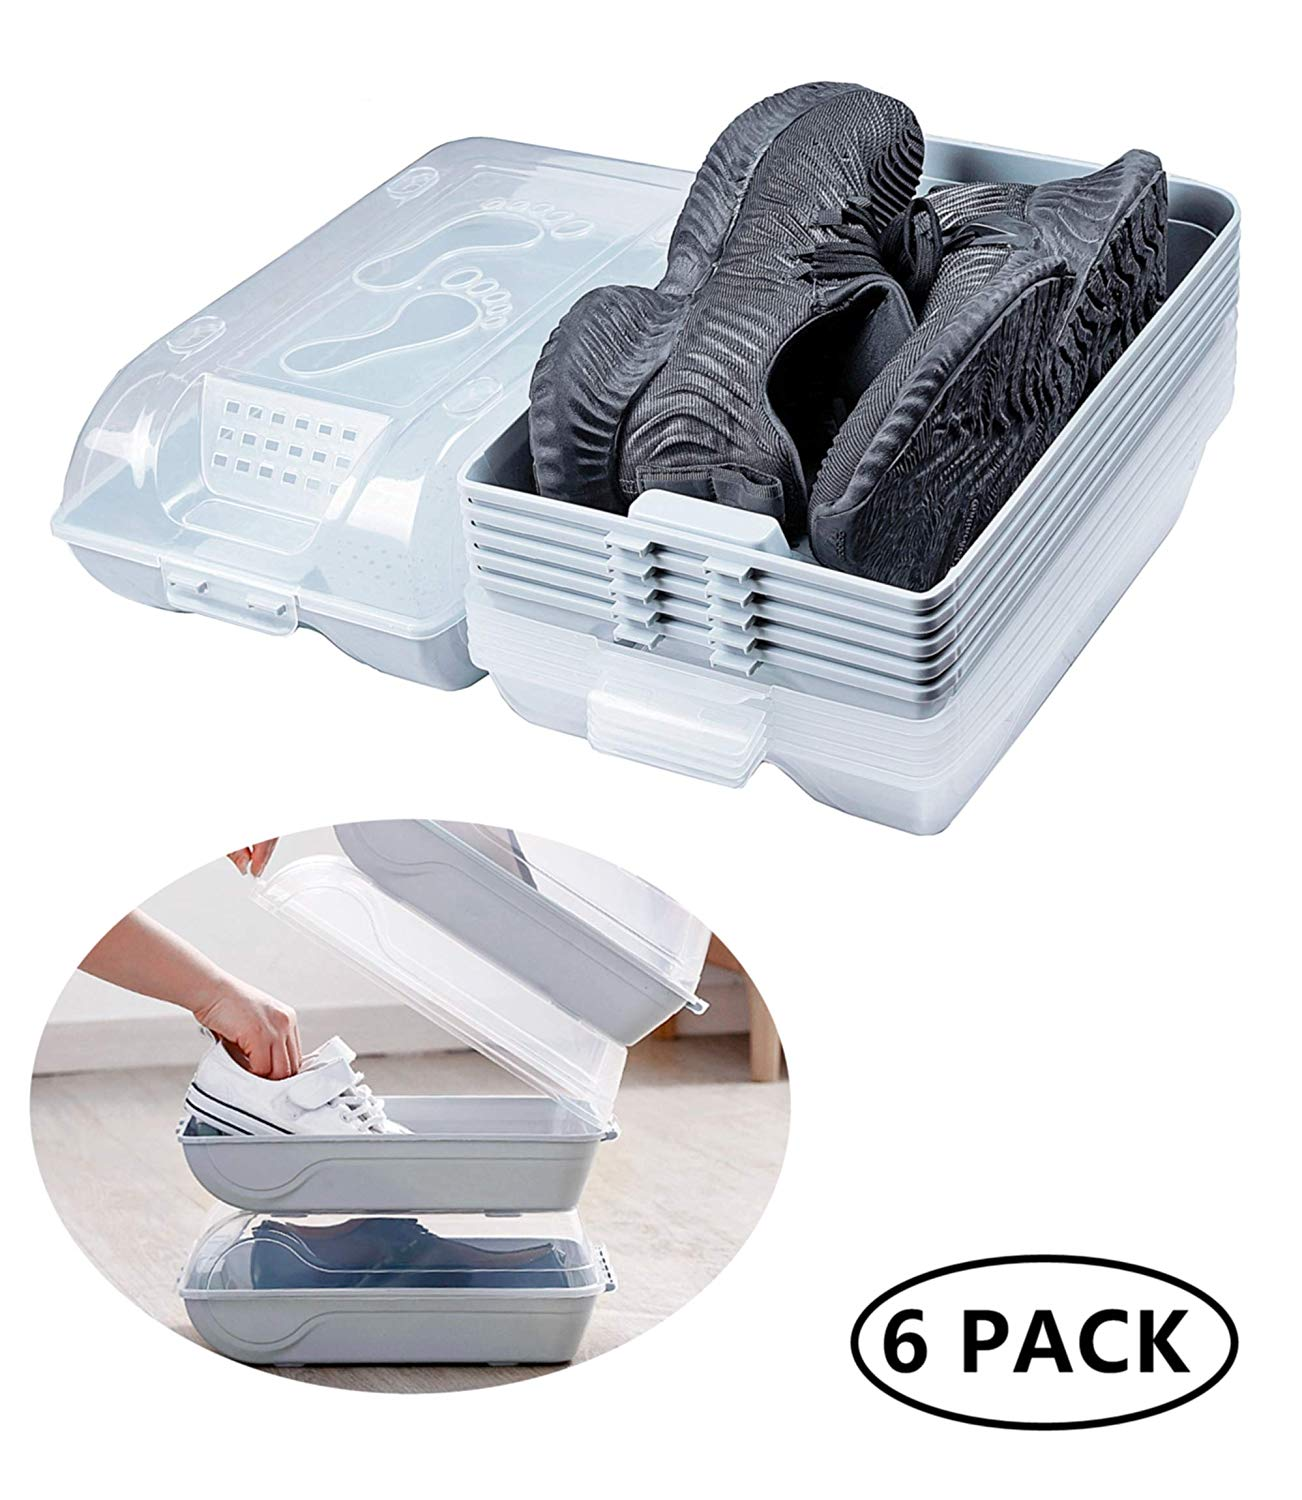 YEAVS Clear Plastic Shoe Organizers with Lids